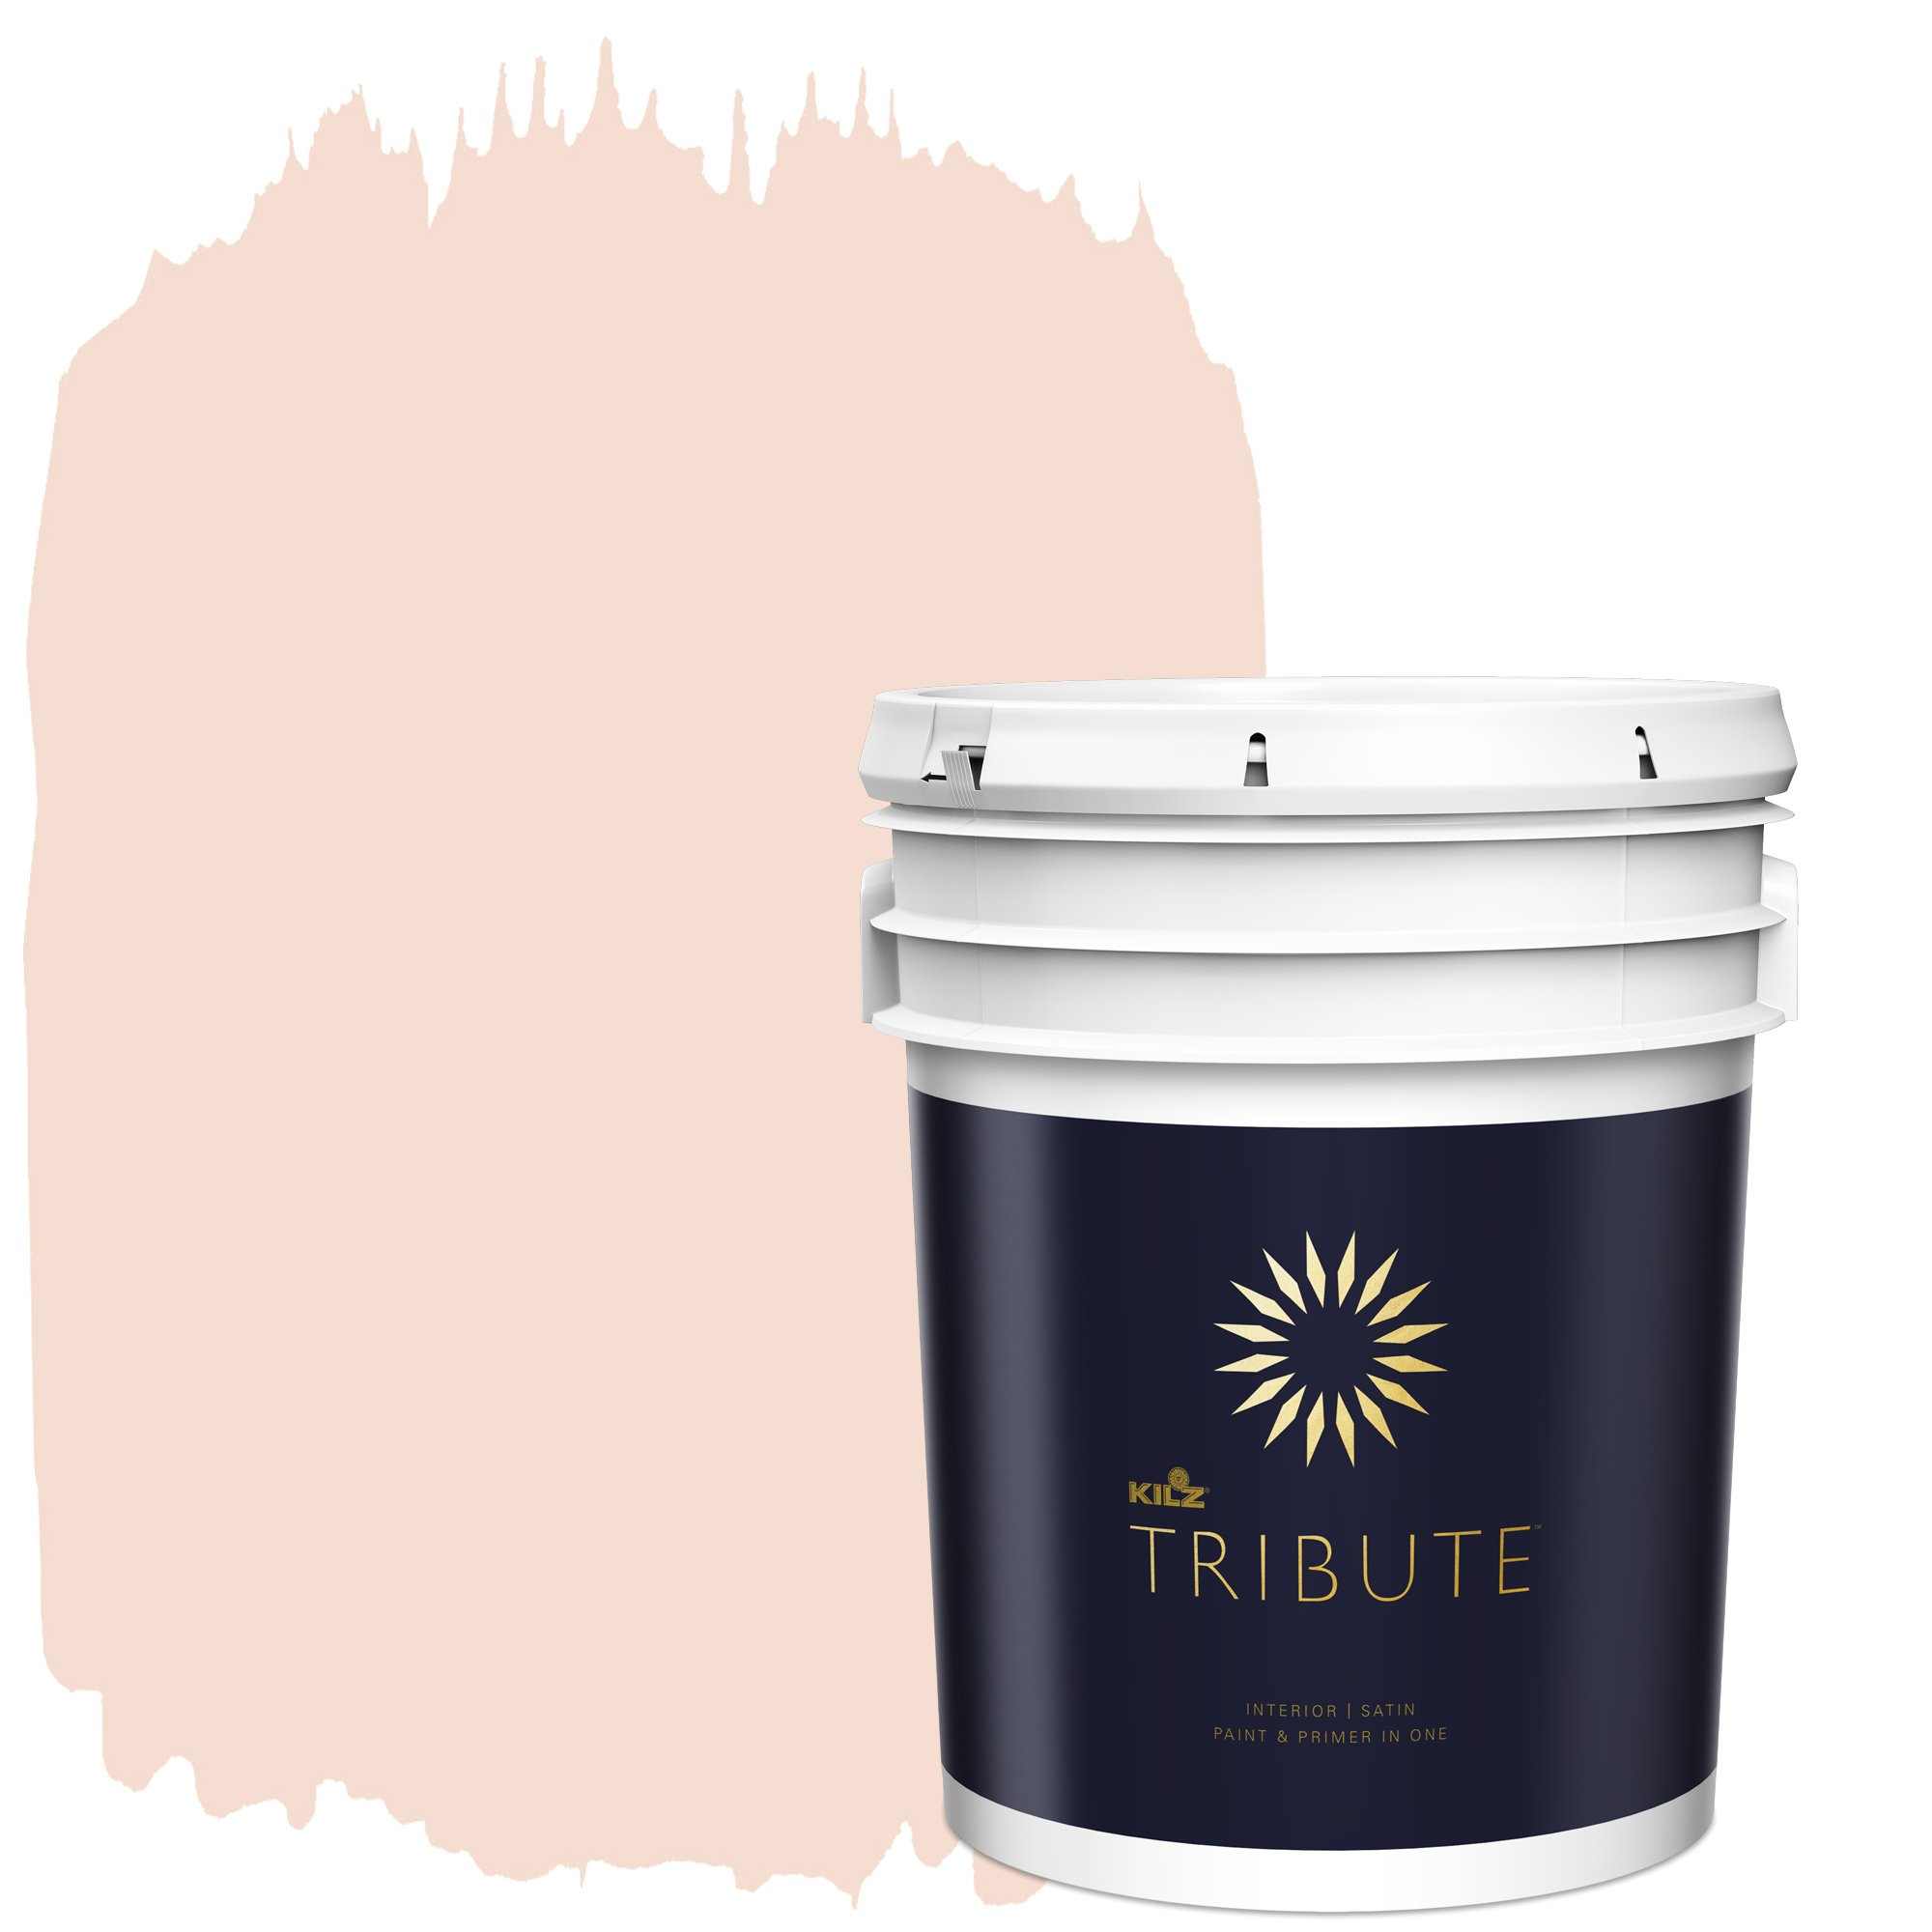 KILZ TRIBUTE Interior Satin Paint and Primer in One, 5 Gallon, Angelic Pink